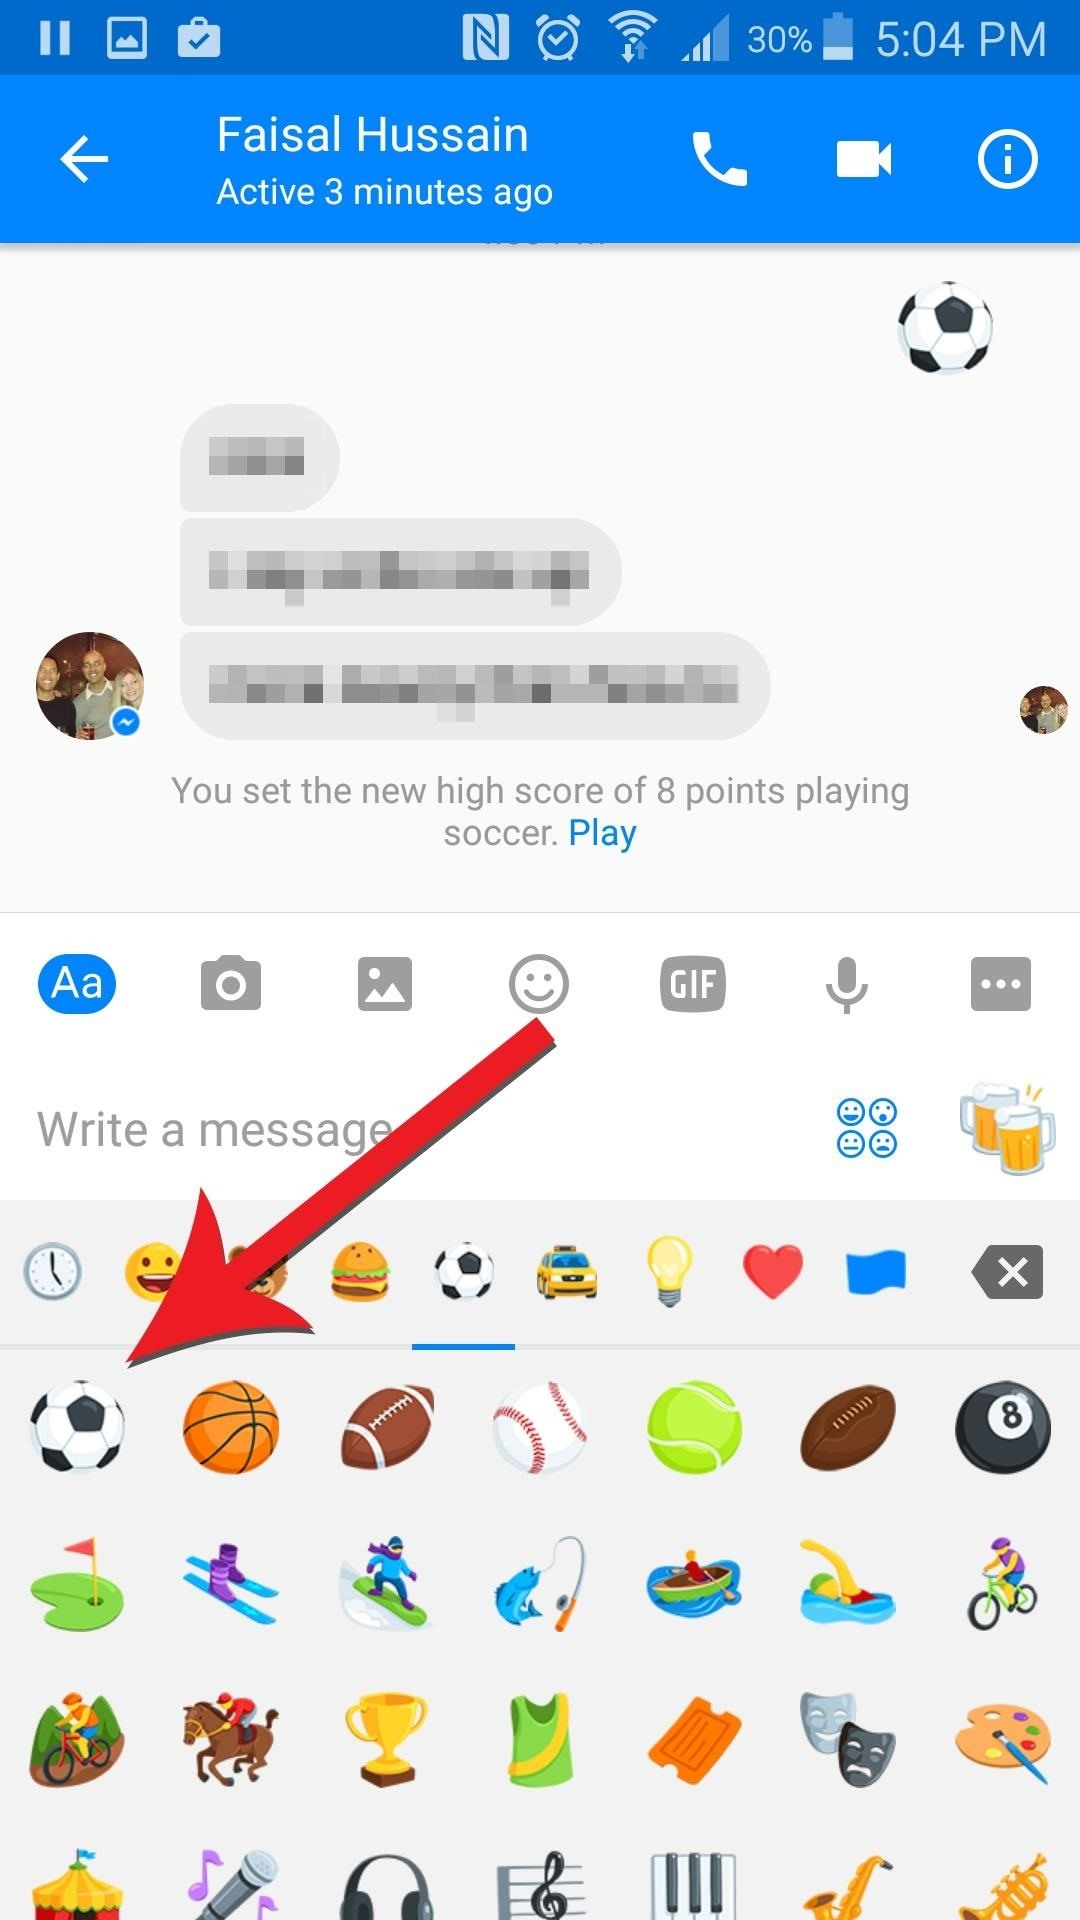 Facebook Messenger Just Released a Secret Soccer Game—Here's How to Play